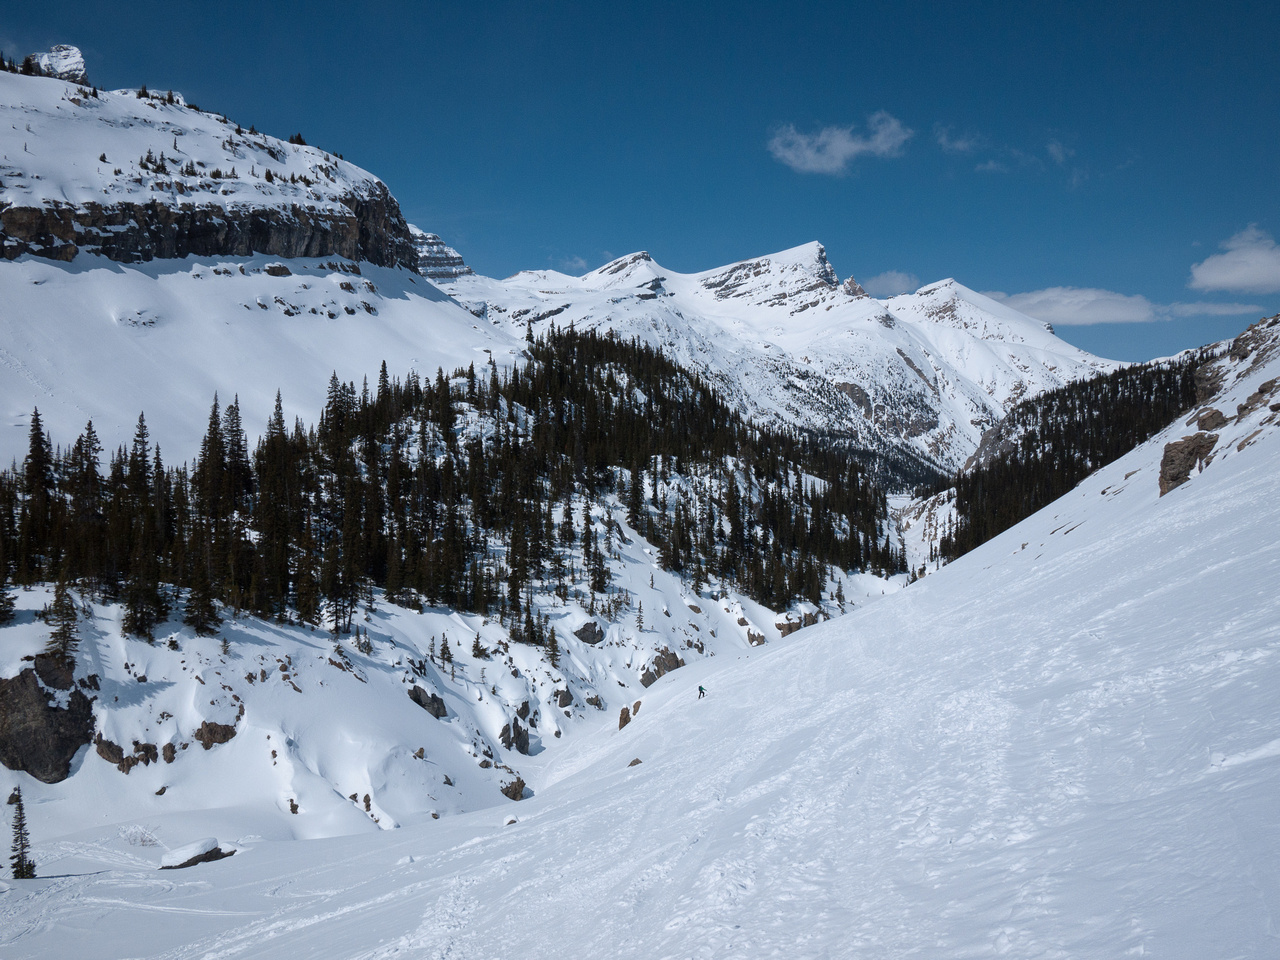 Mike is dropping into the canyon. This is the riskiest avalanche slope we had to cross - but it was solid on this day.